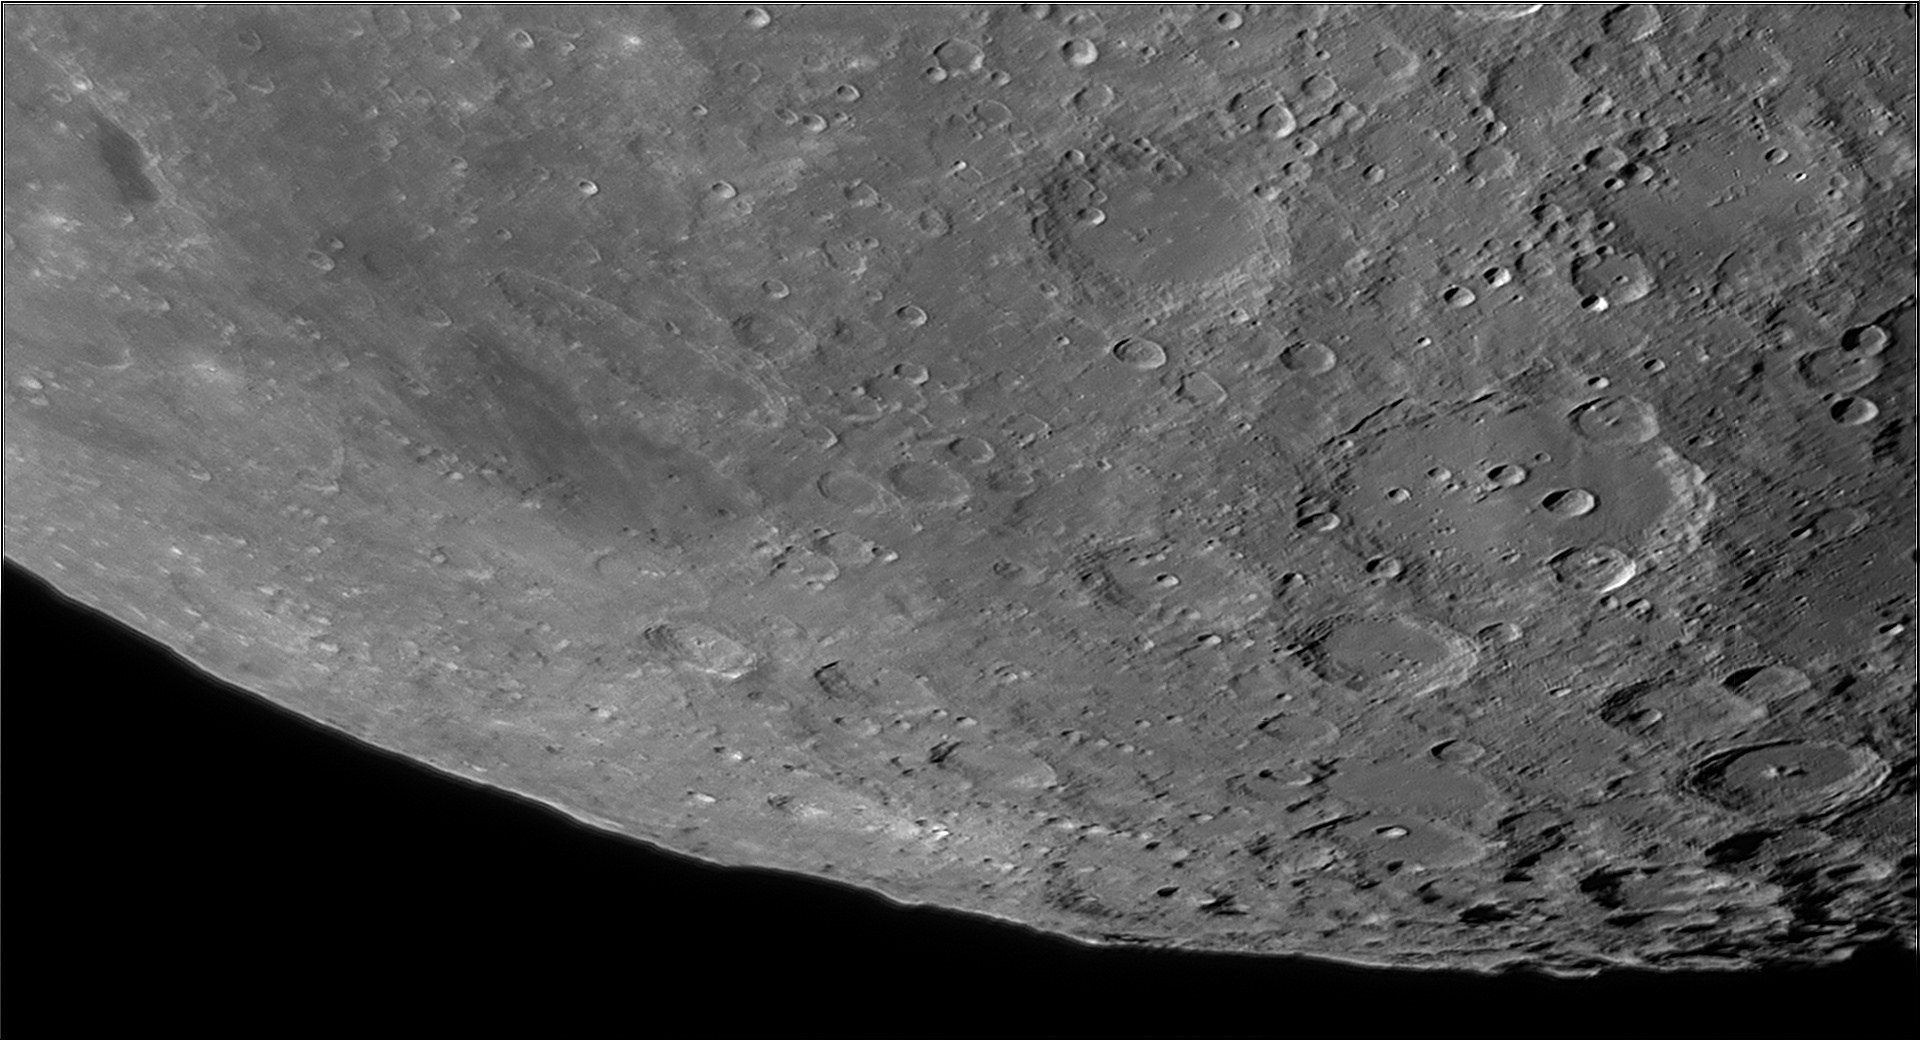 5dd1be74f0208_Moon_074415_171119_ZWOASI290MM_IR_650nm_AS_P30_lapl4_ap922.jpg.59ecade38500c3a52fad1e35709cb9d5.jpg